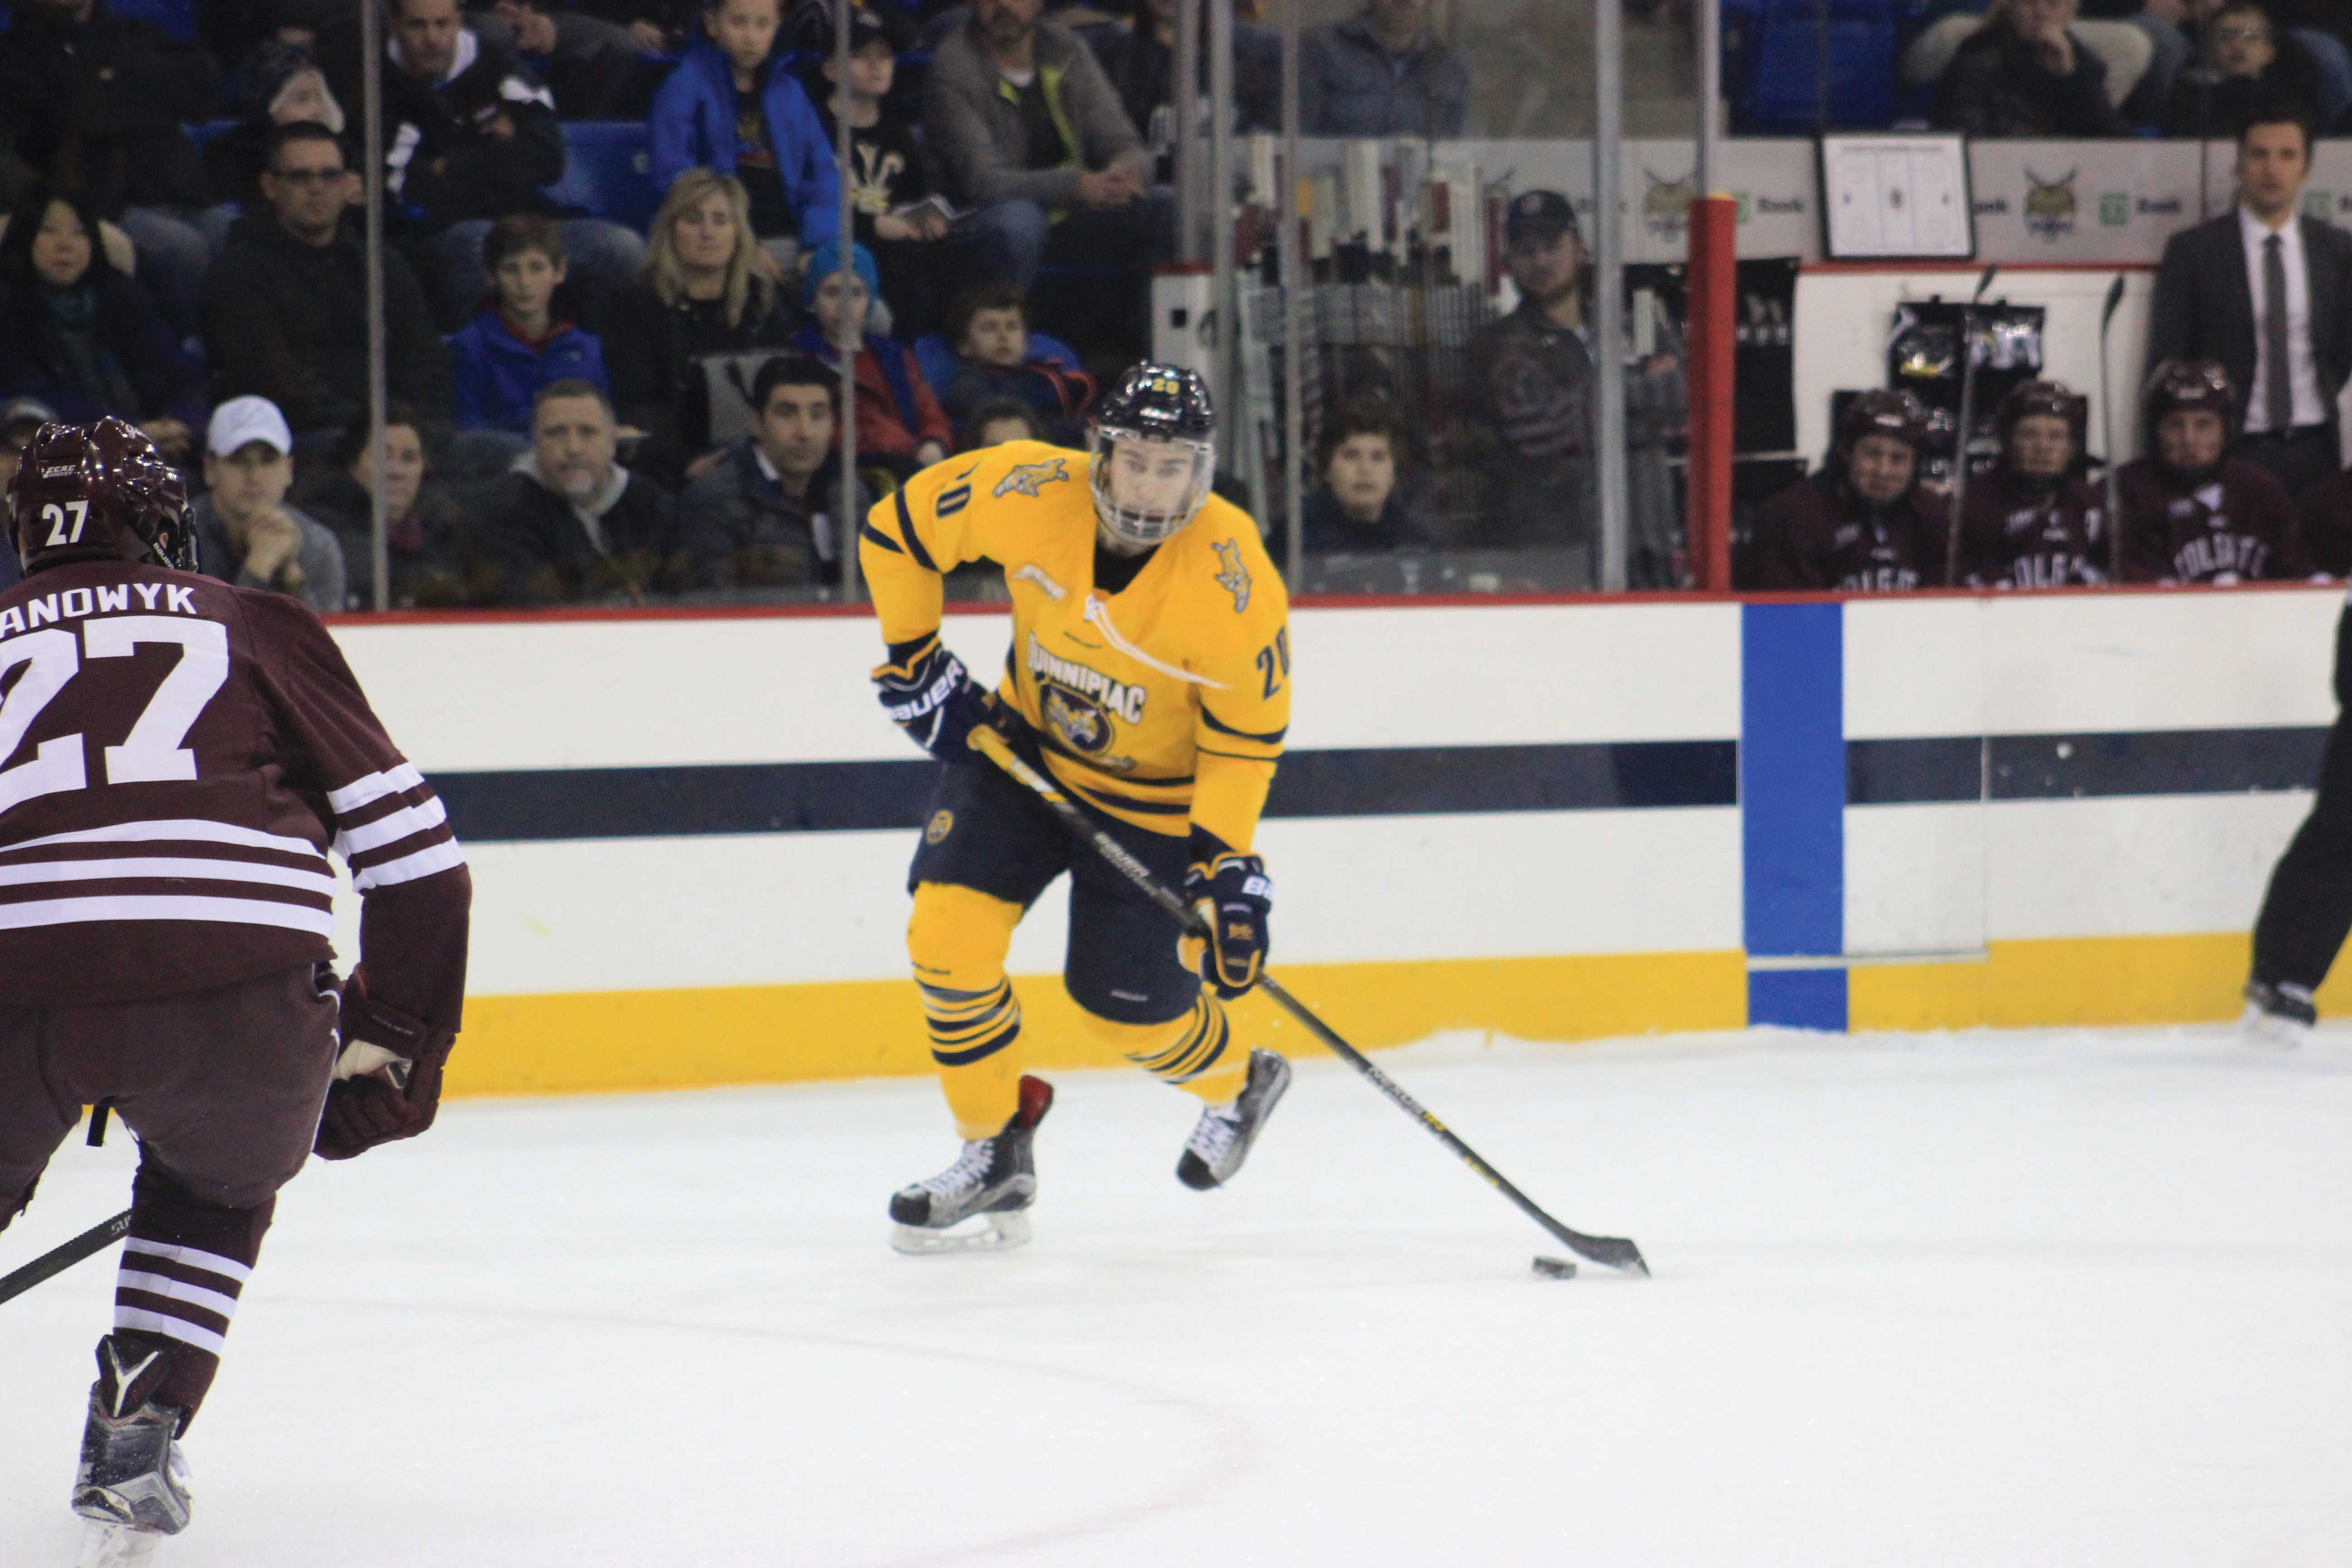 Men's ice hockey team takes Game 2 at St. Lawrence | The ...